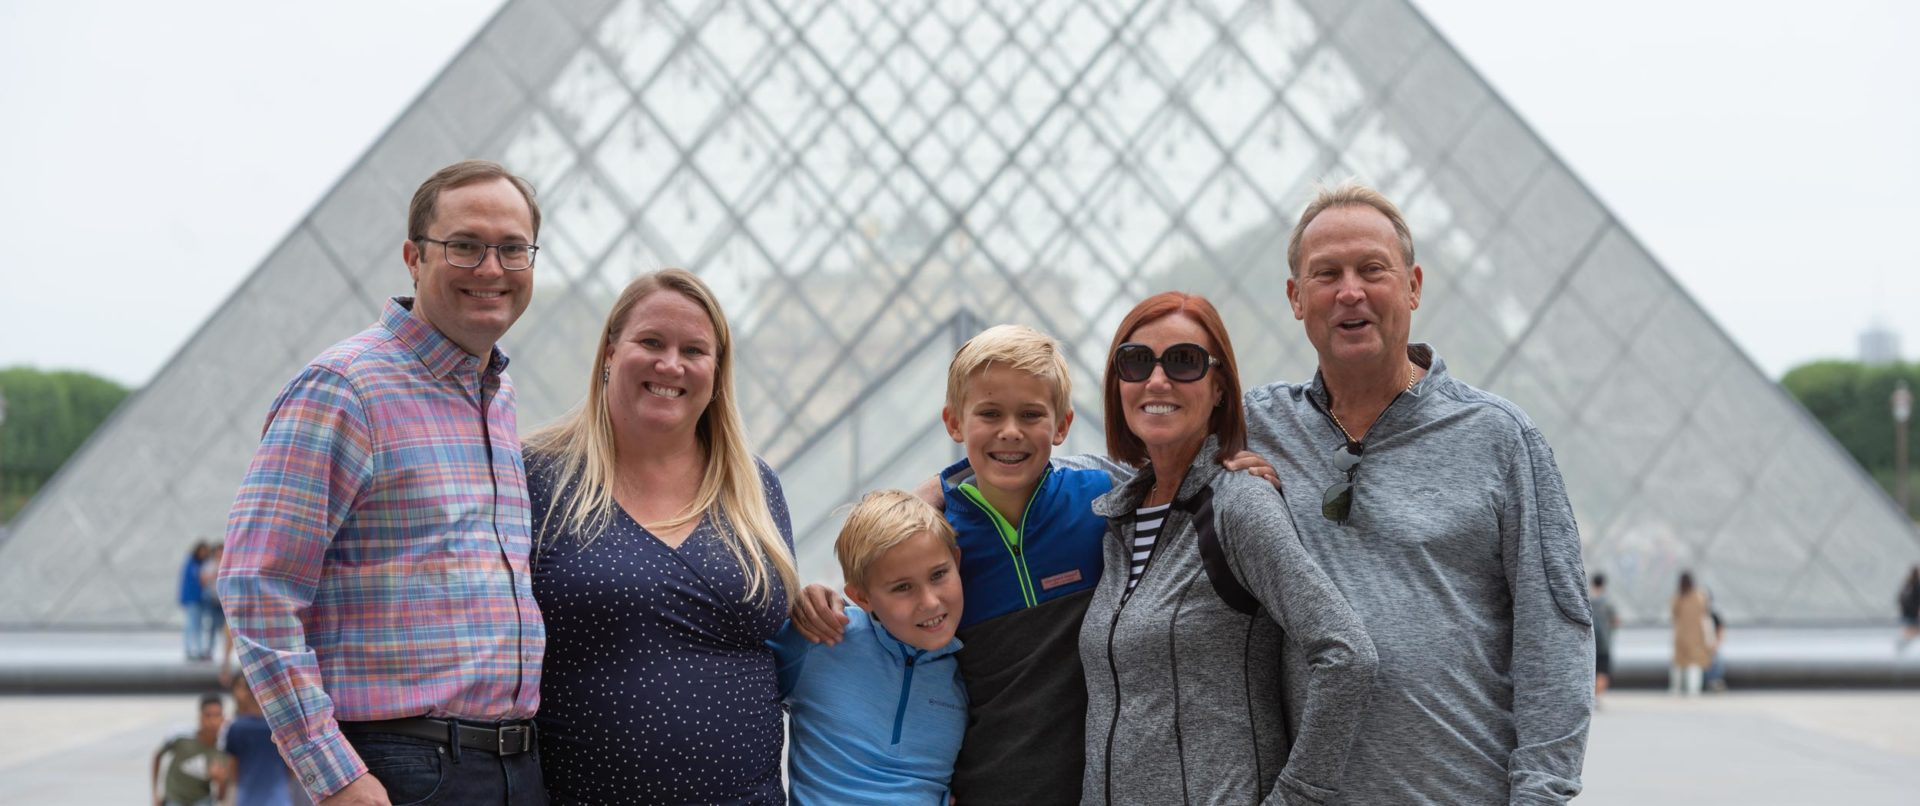 paris-landmarks-photo-tour-family